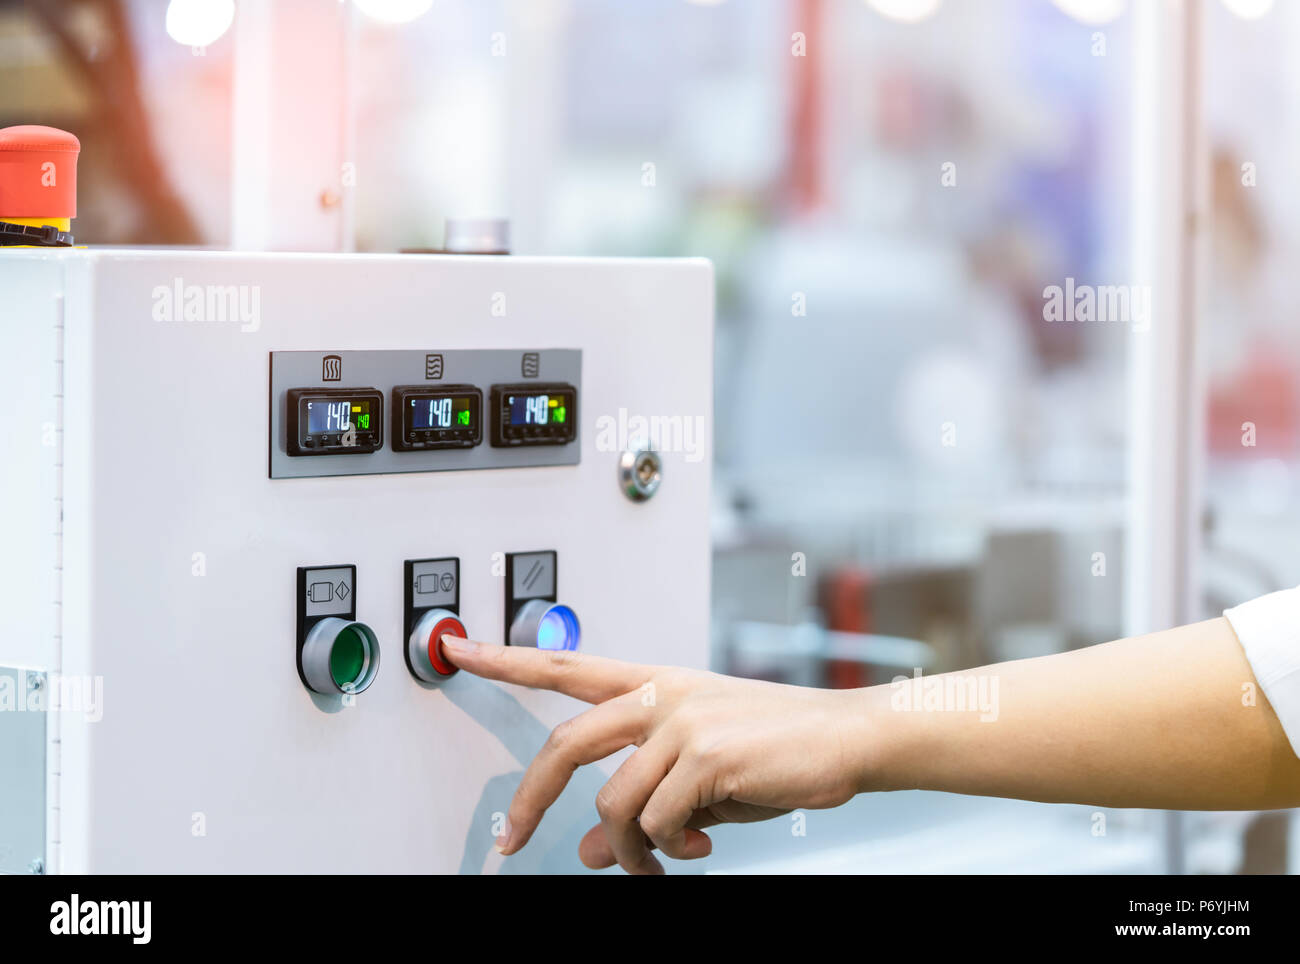 Engineer's hand push red button to shutdown temperature control machine. Temperature control panel cabinet contain digital screen display for temperat - Stock Image